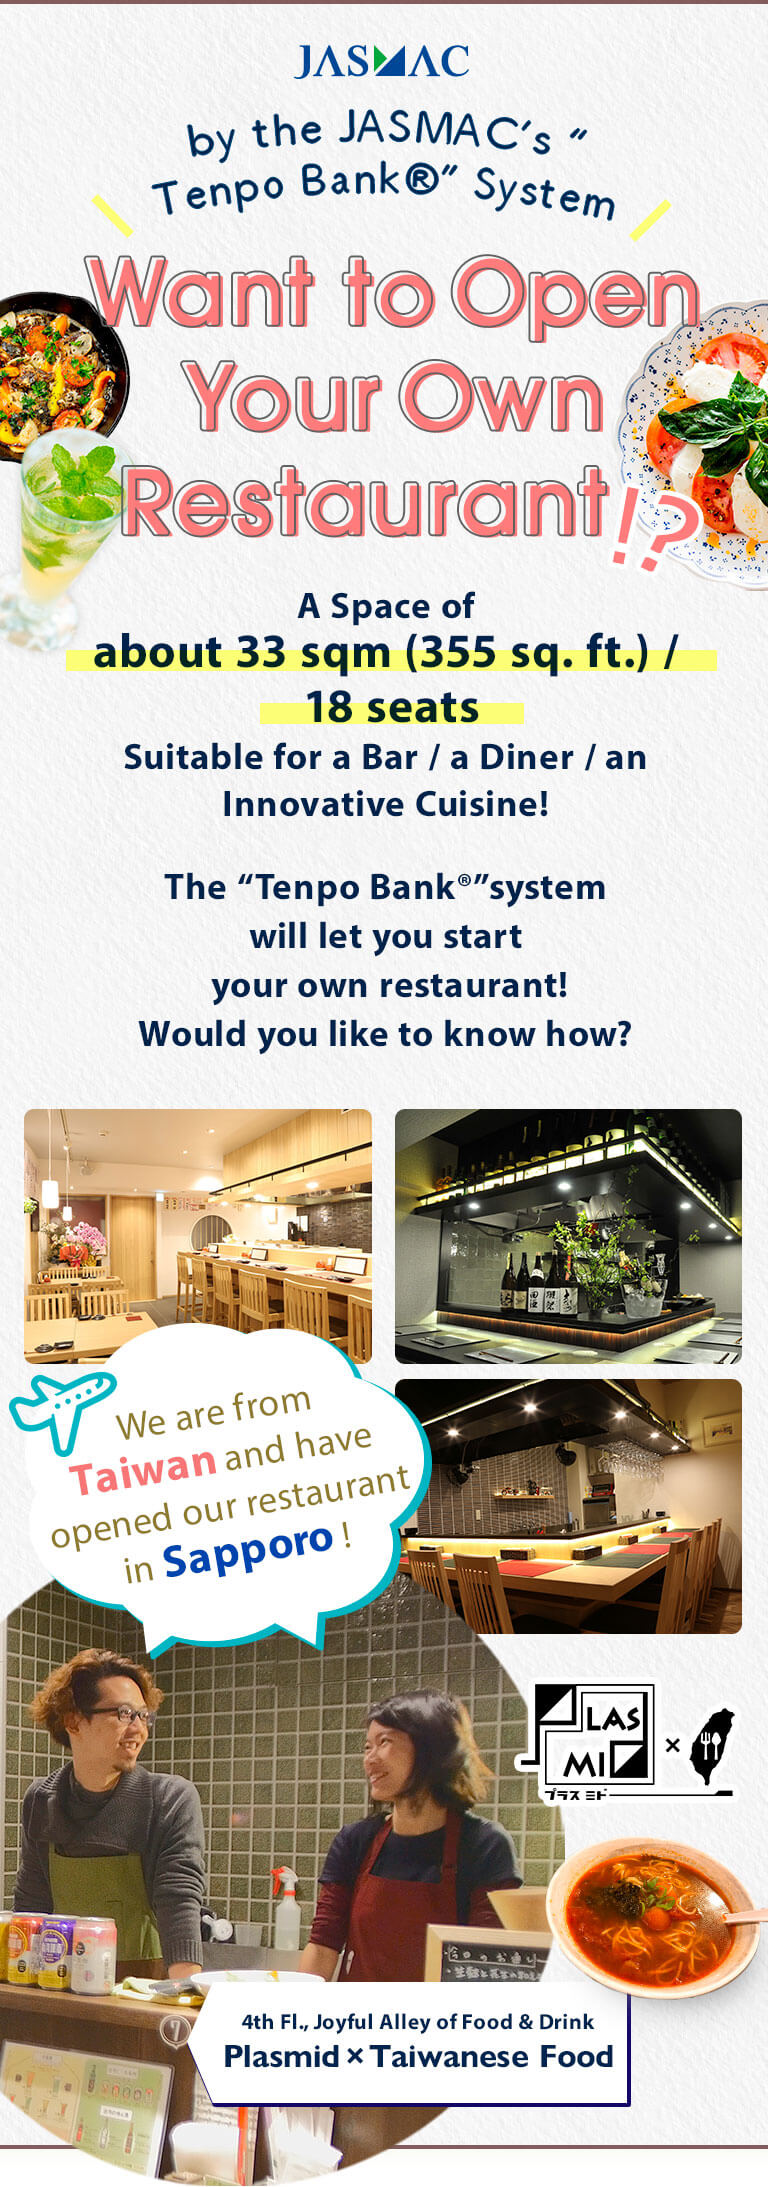 """Want to Open Your Own Restaurant!? by the JASMAC's """"Tenpo Bank®"""" System"""